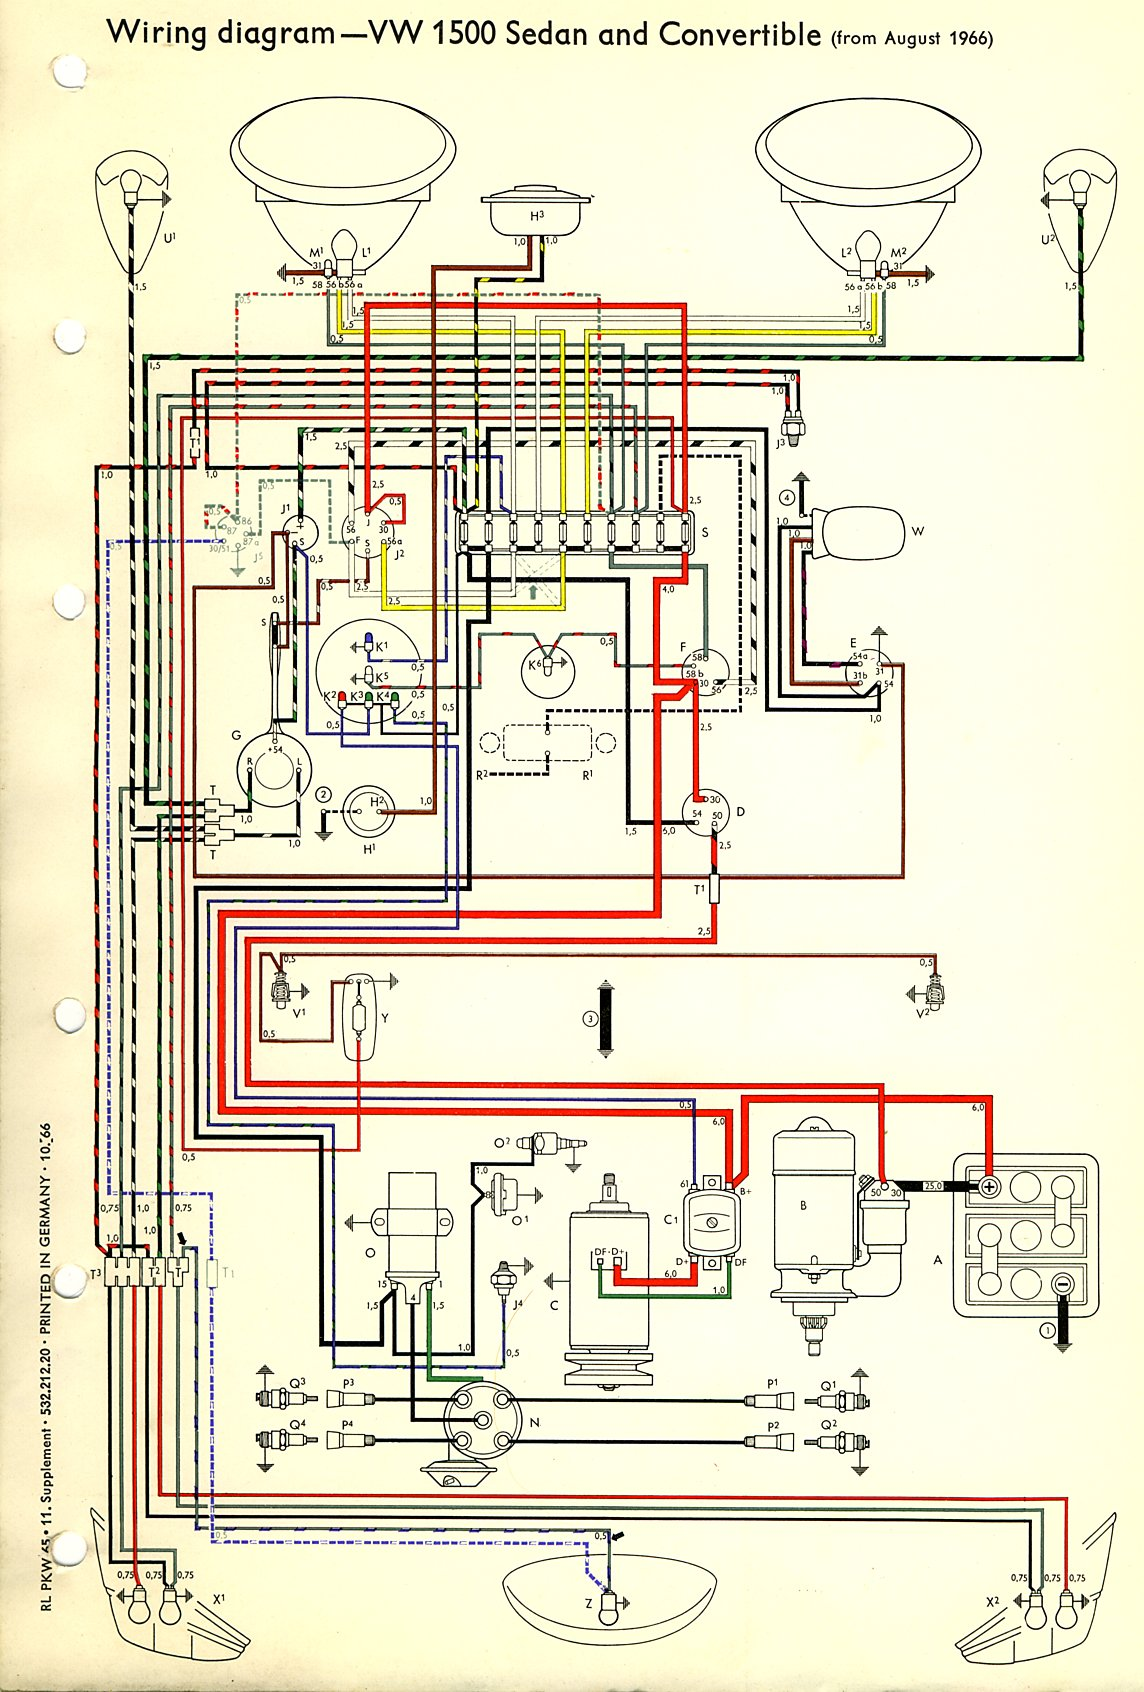 1966 vw wiring diagram - database wiring mark zero - zero.vascocorradelli.it  zero.vascocorradelli.it